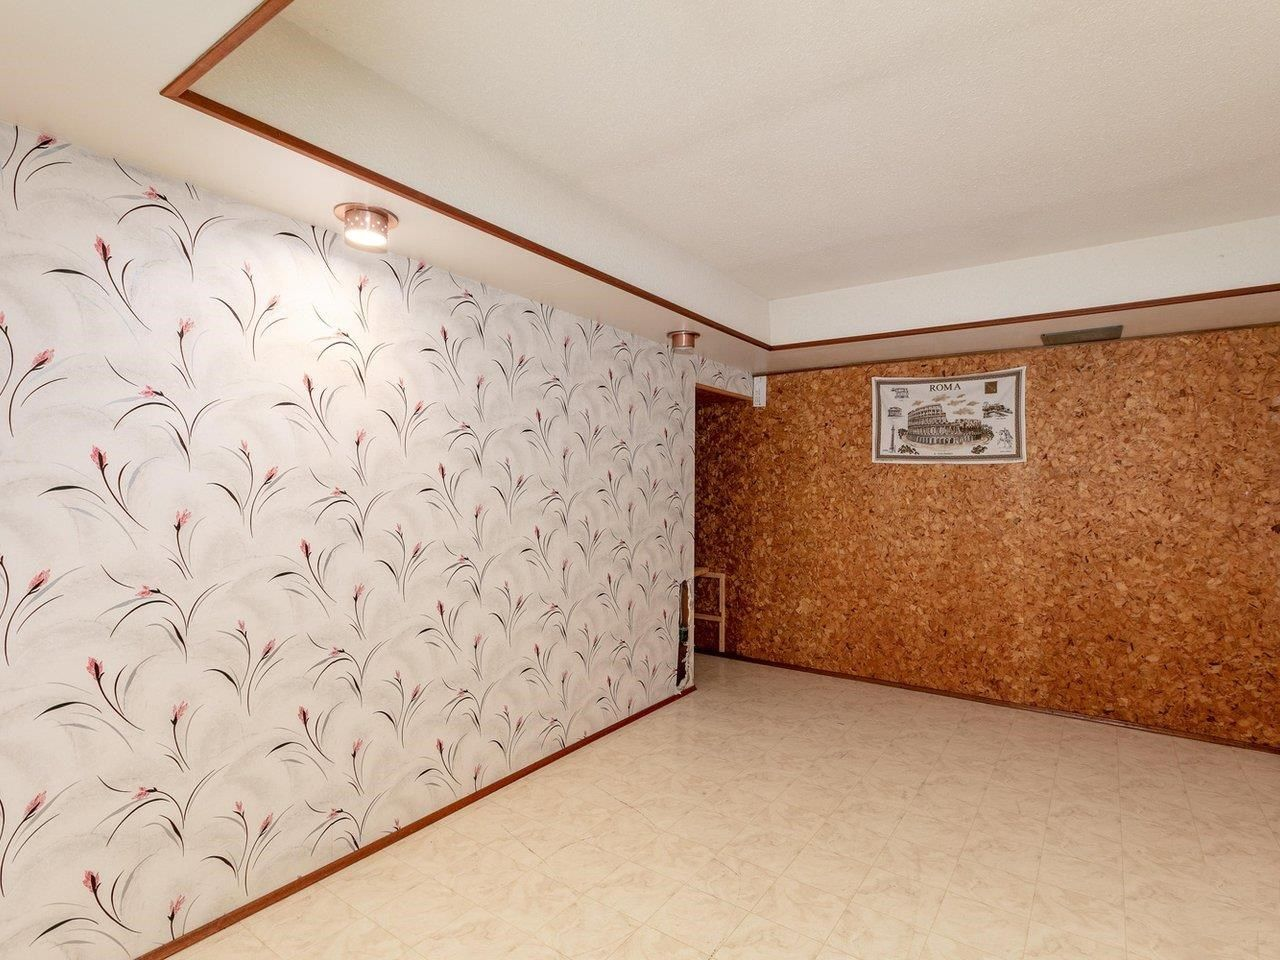 Photo 15: Photos: 6860 HYCREST Drive in Burnaby: Montecito House for sale (Burnaby North)  : MLS®# R2594917